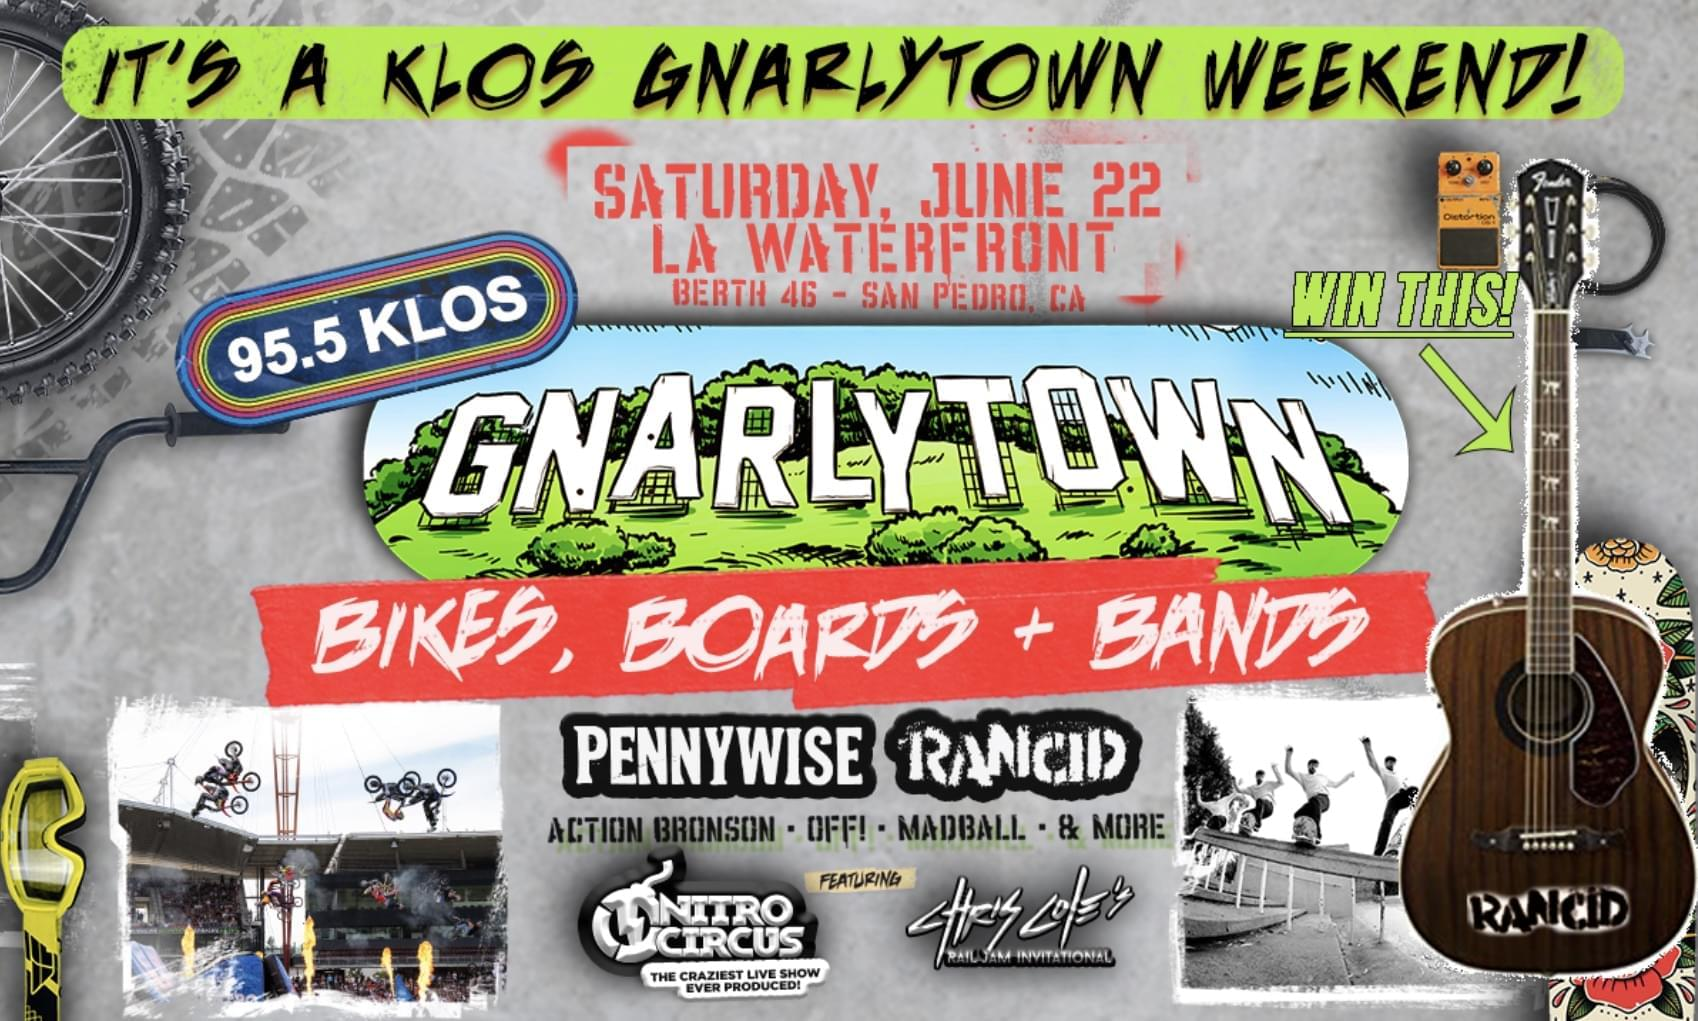 It's a KLOS Gnarlytown Weekend!